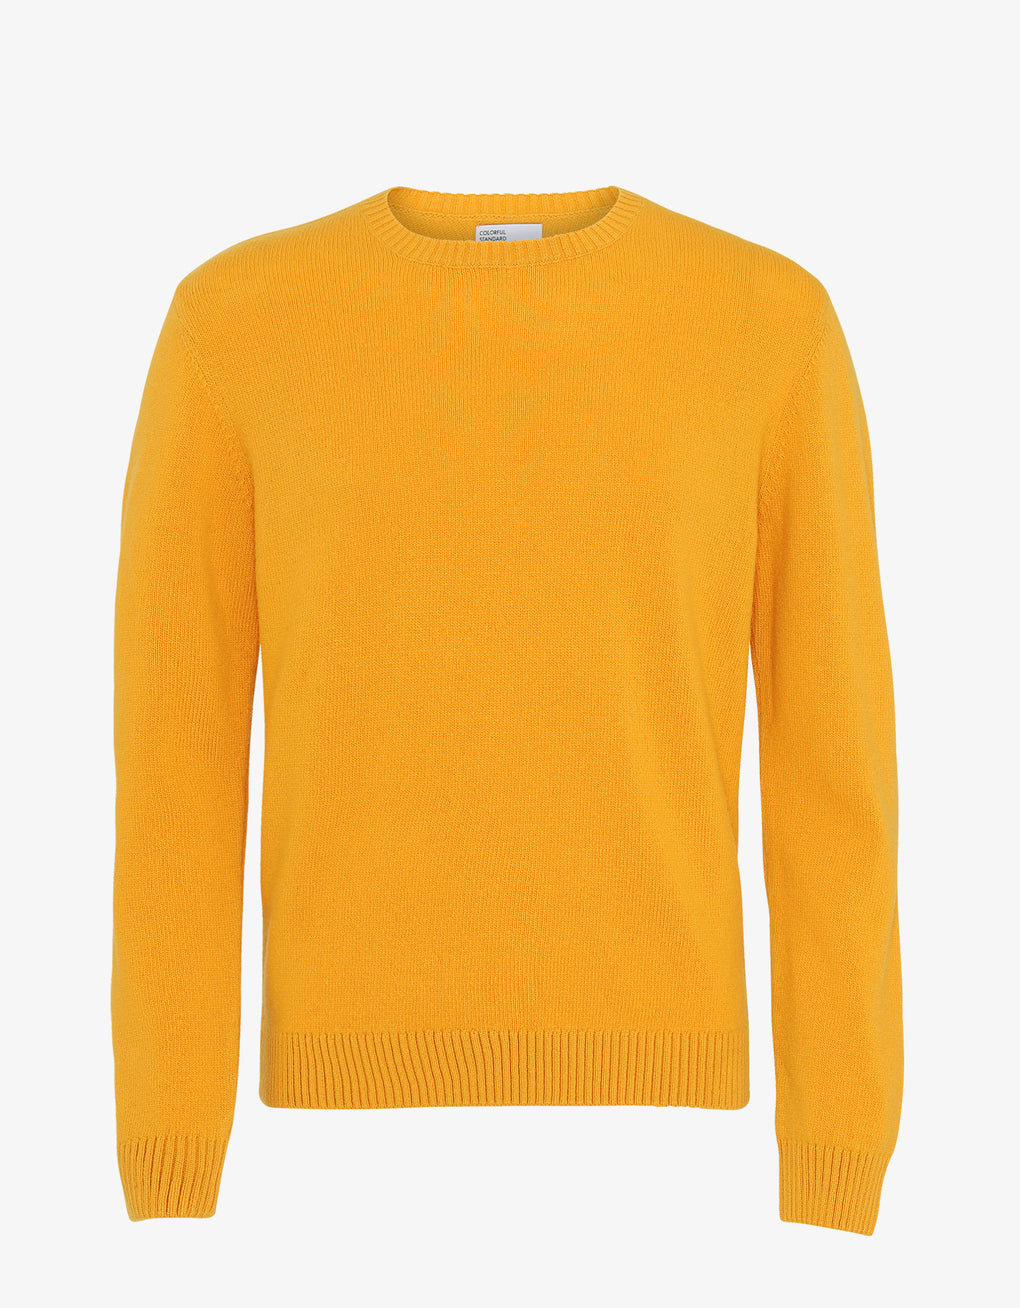 Colorful Standard Merino Wool Crew Merino Crewneck Burned Yellow